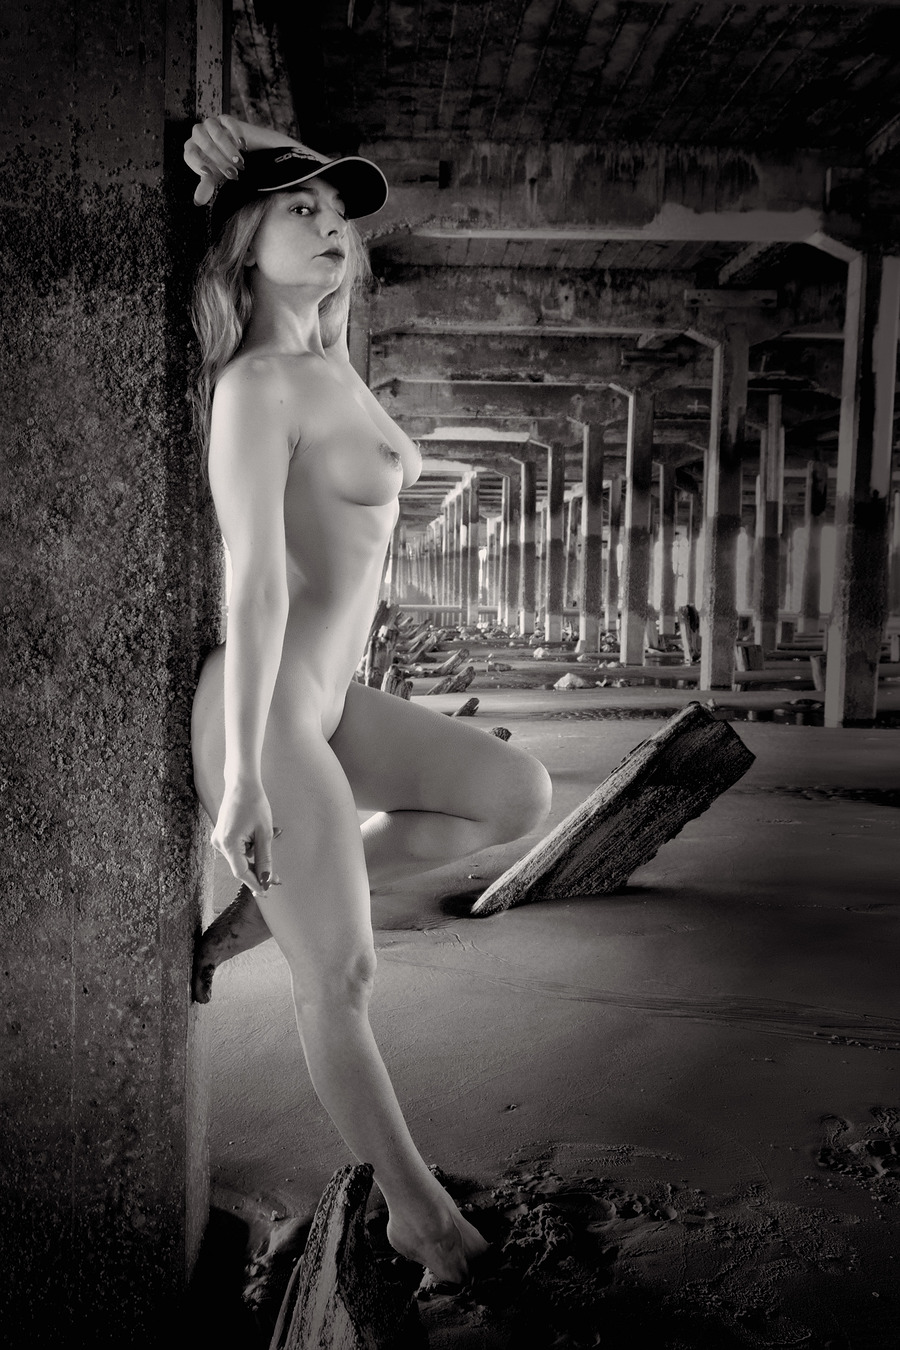 Pier - Black and white version / Photography by shutterman, Model Cleo P / Uploaded 24th June 2020 @ 10:50 AM